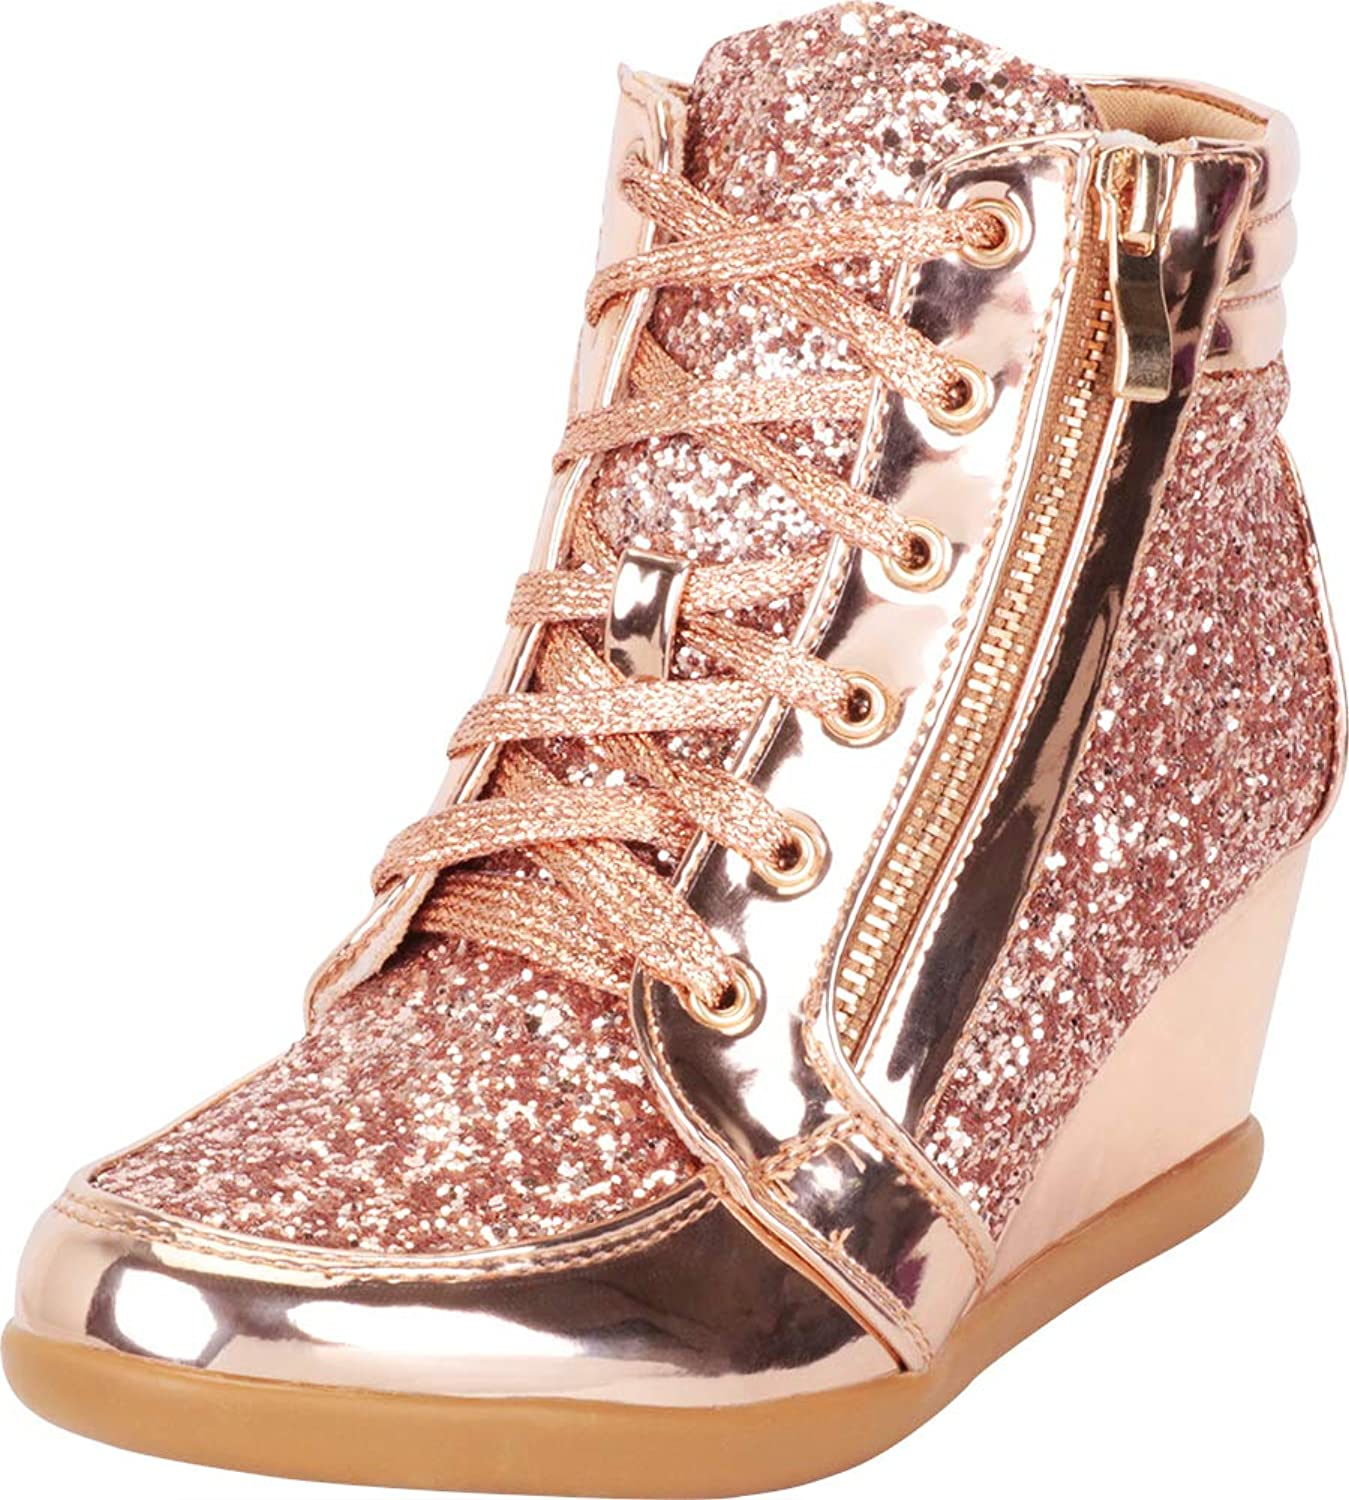 Cambridge Select Women's Glitter Lace-Up Zipper Wedge Fashion Sneaker